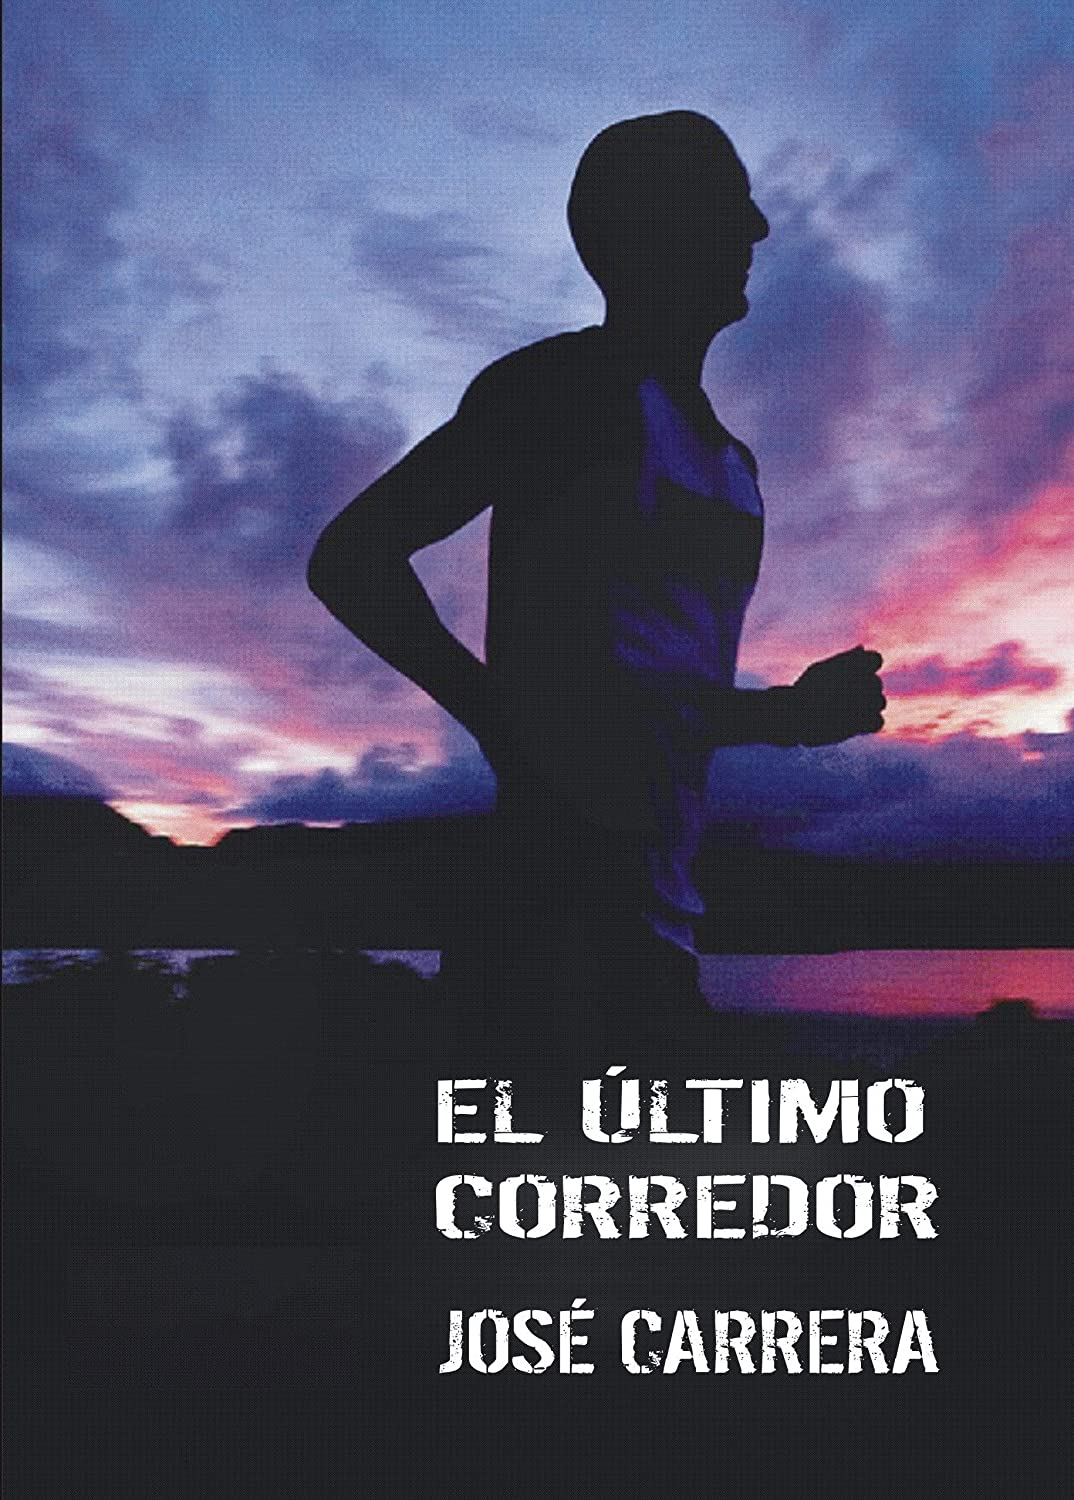 El Último Corredor eBook: Carrera, José: Amazon.es: Tienda Kindle